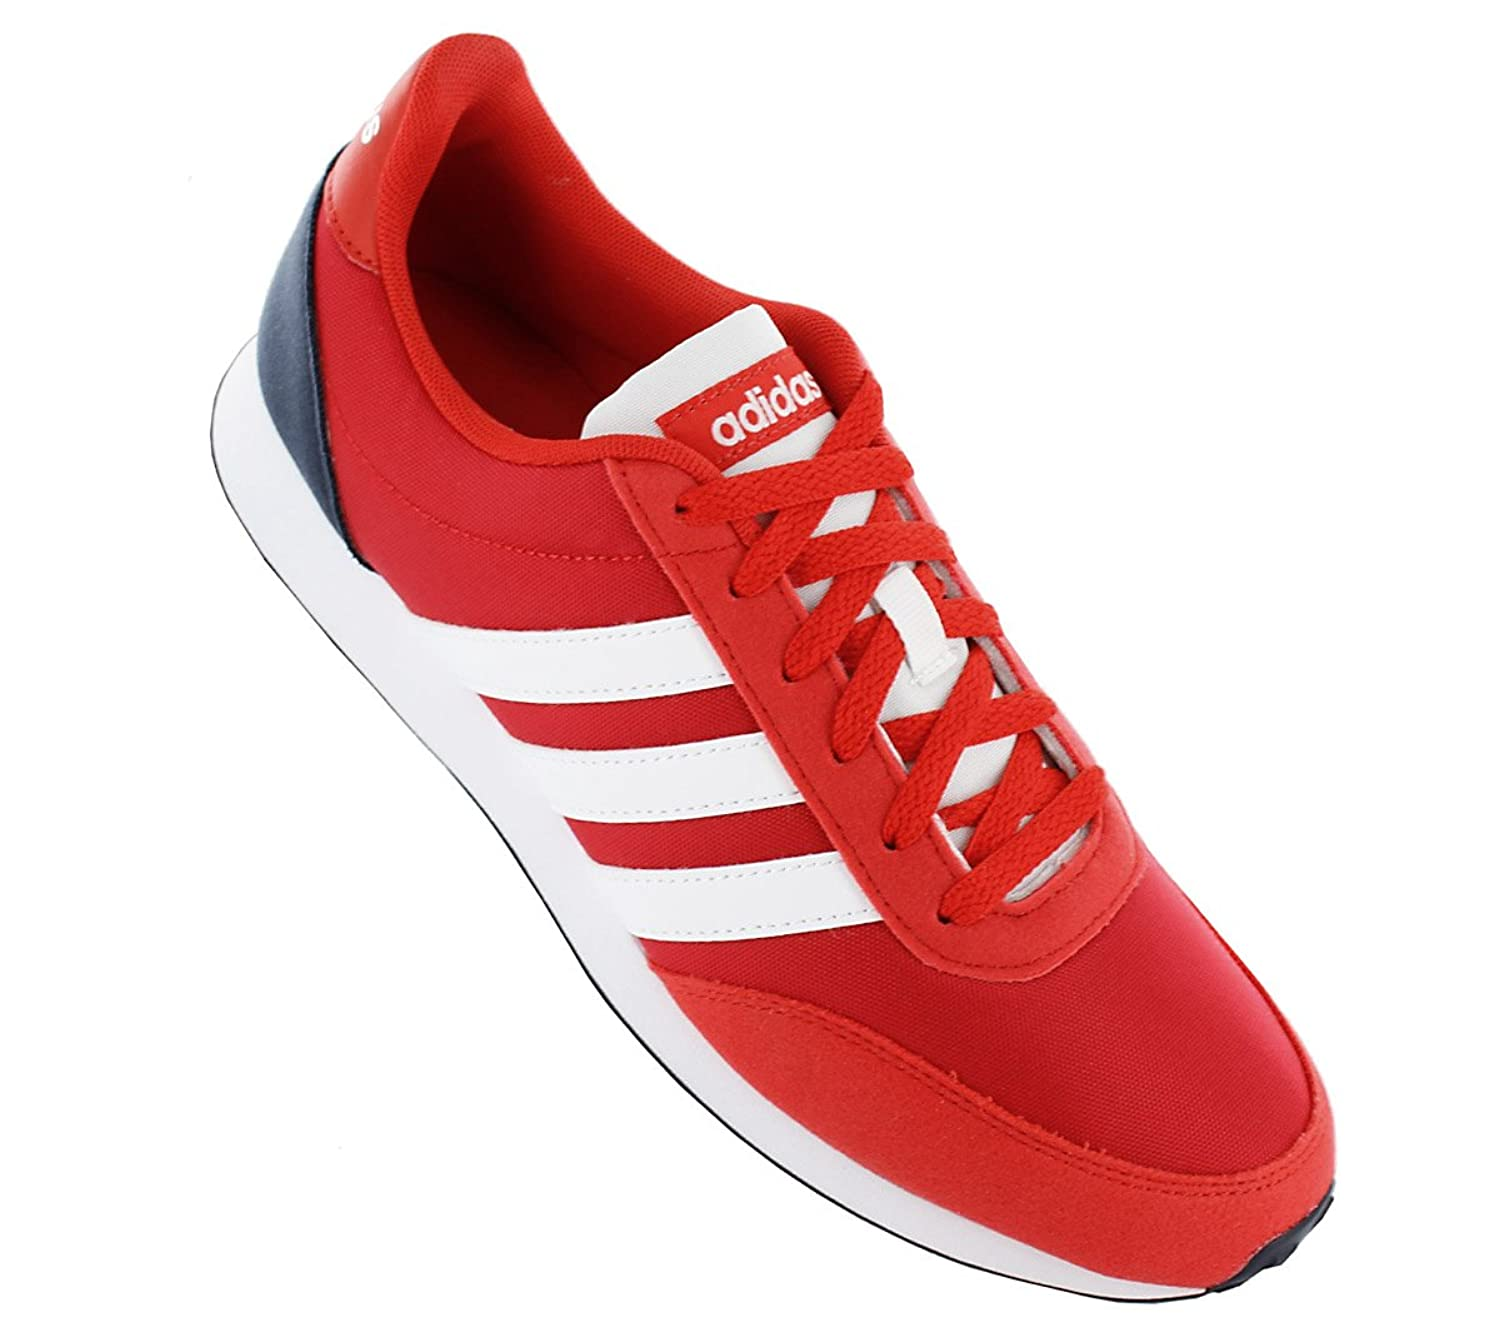 adidas V Racer 20 - DB0430 - Couleur: Rouge - Pointure: 46.6 t2dsq